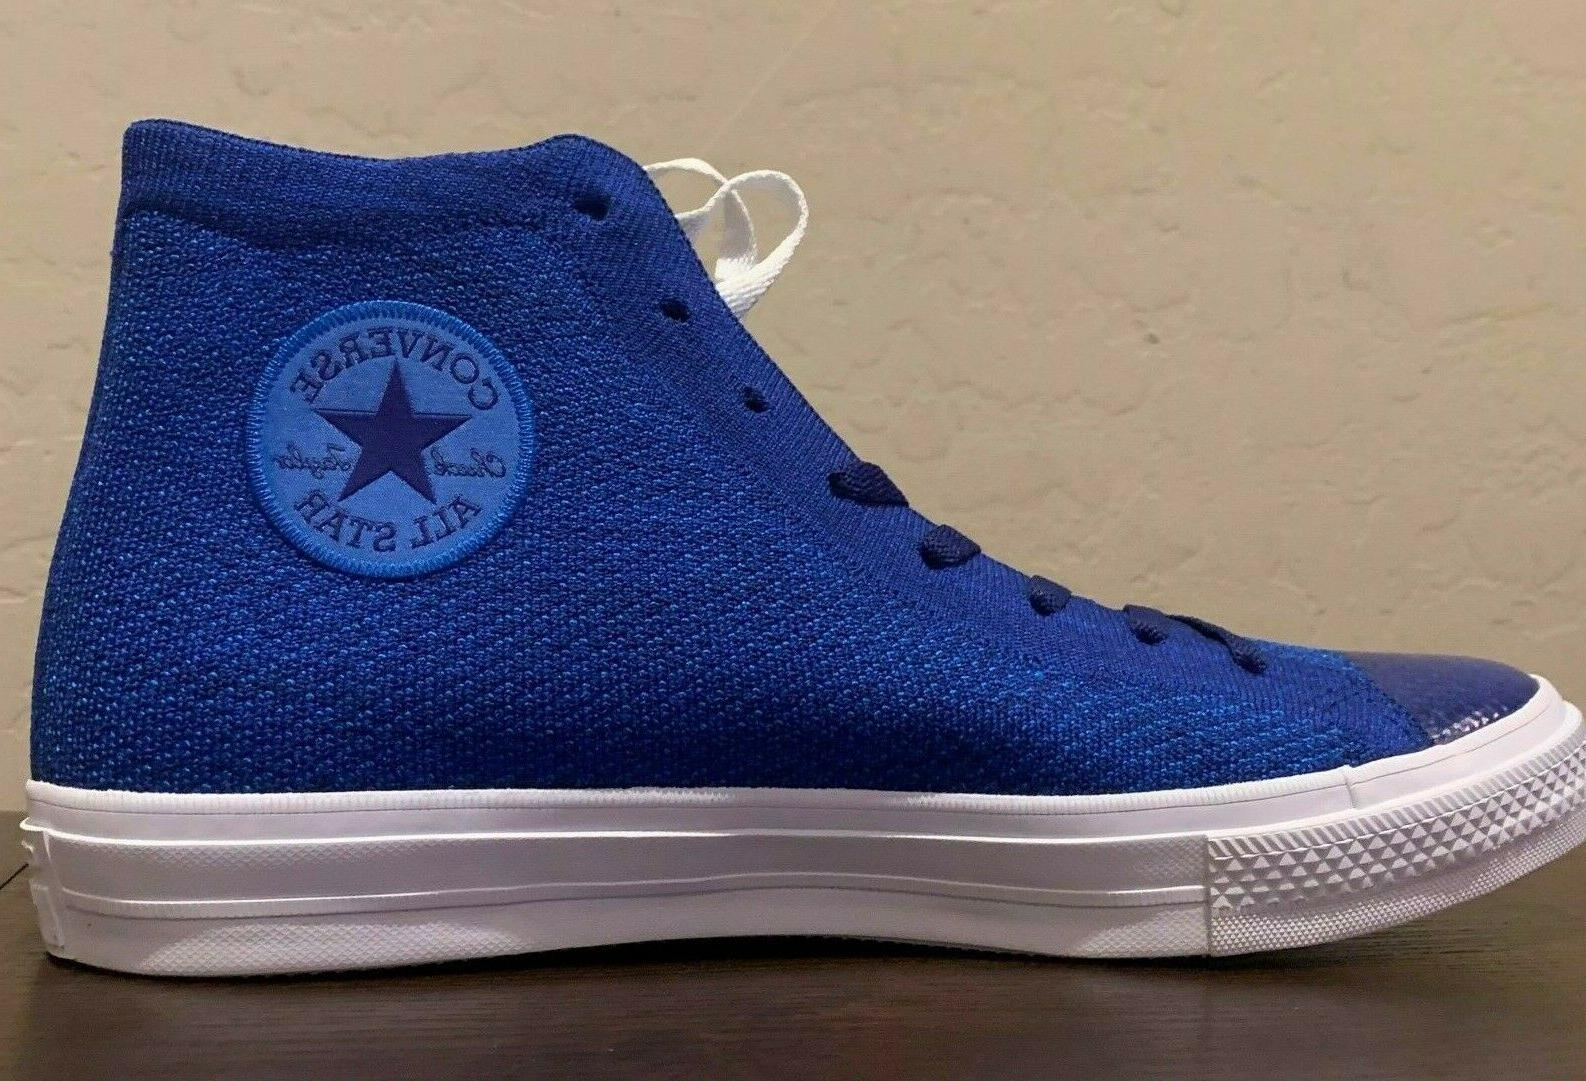 CONVERSE CHUCK STAR FLYKNIT MENS SHOES NEW 156733C